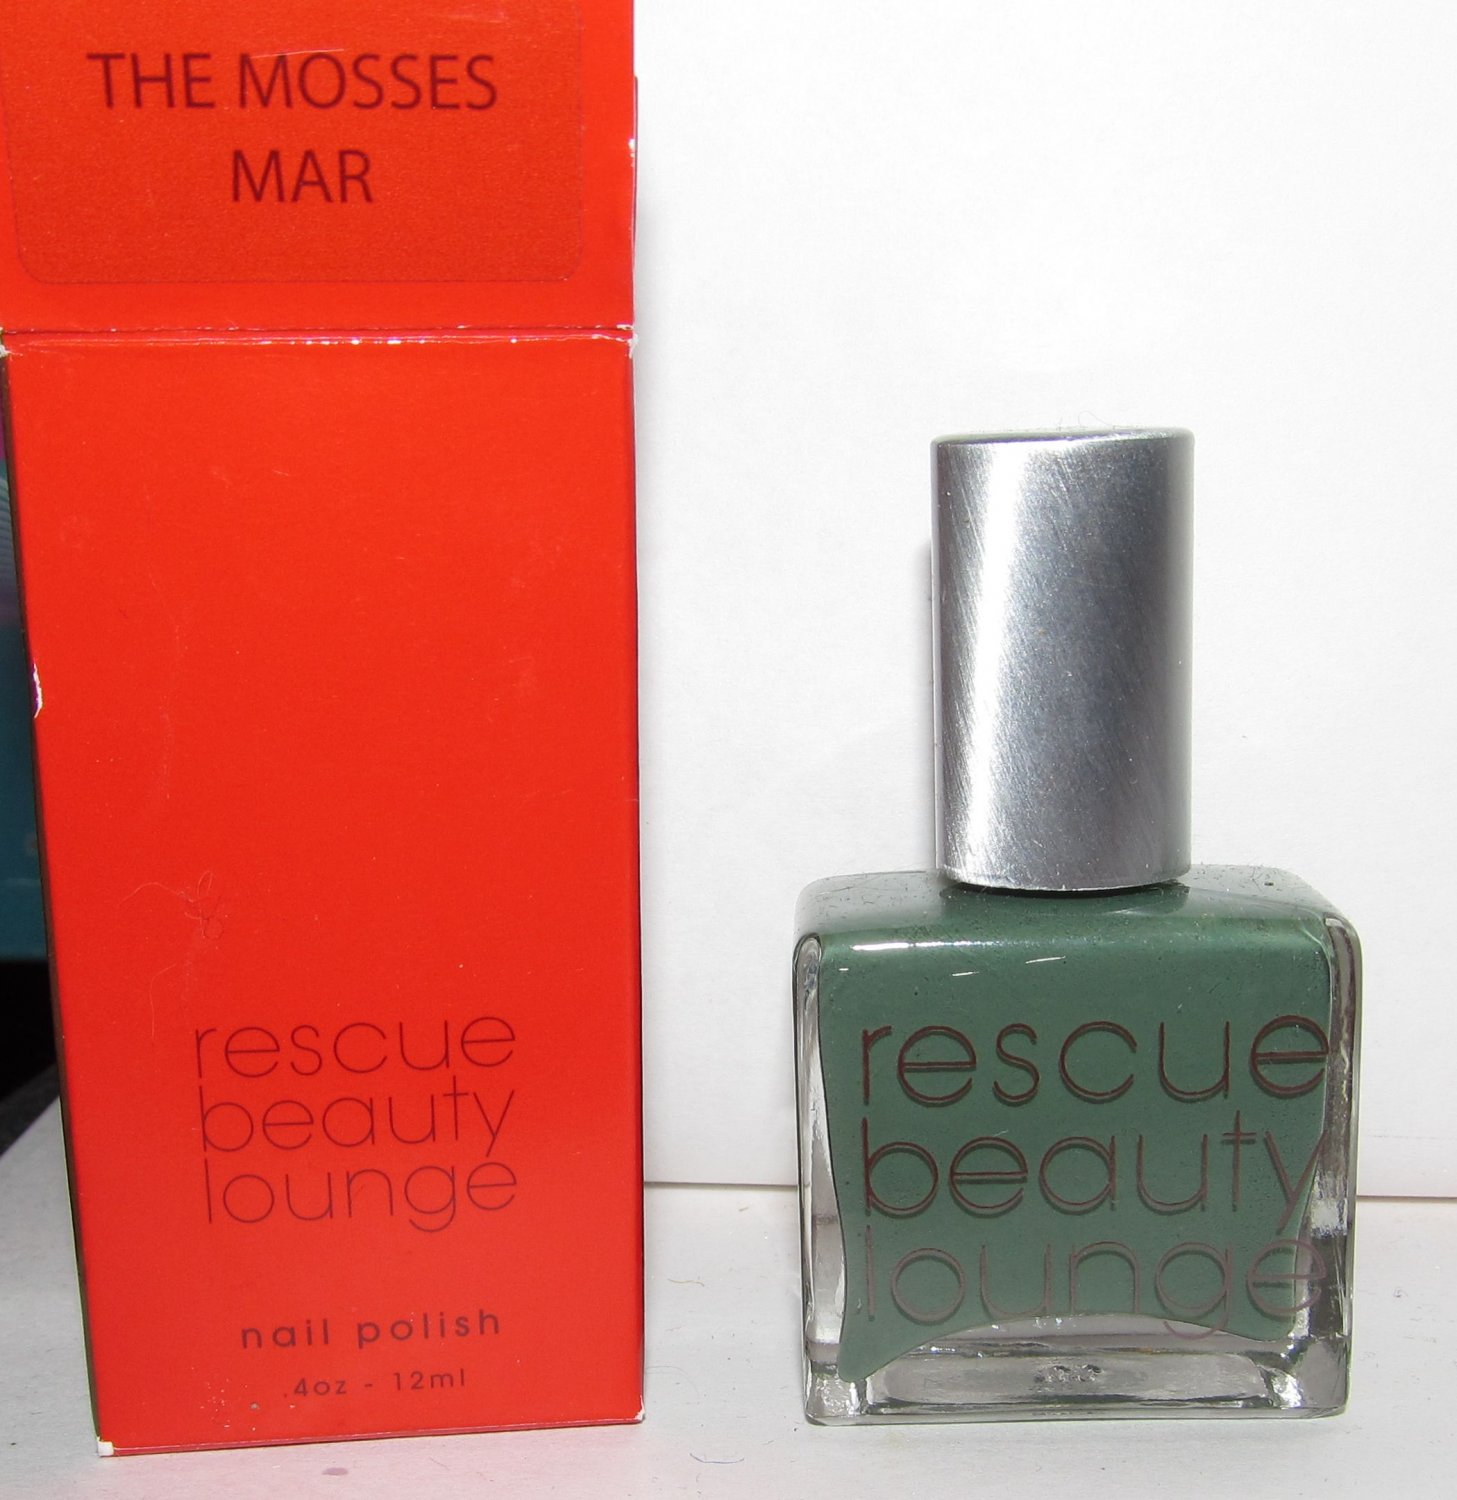 Rescue Beauty Lounge Nail Polish - The Mosses Mar - NIB